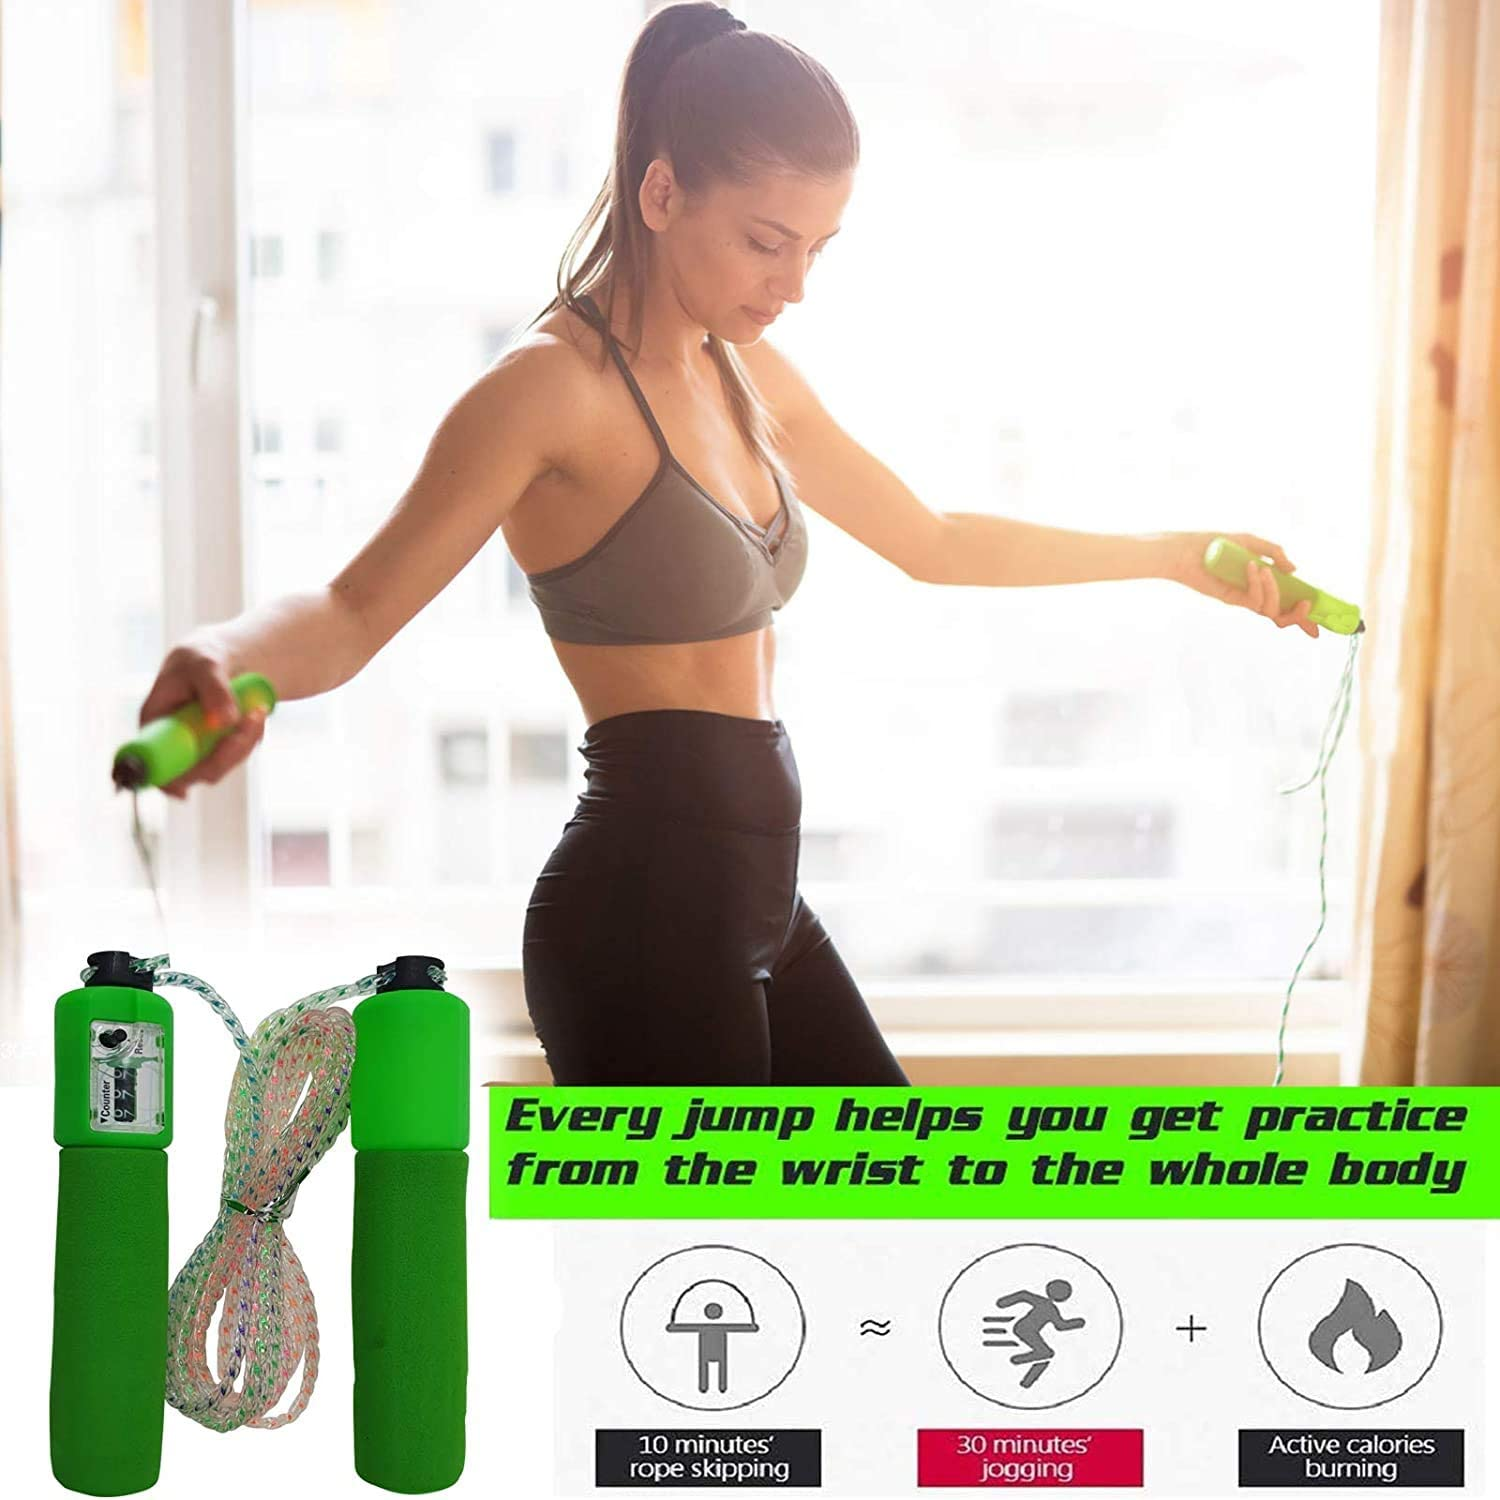 Kids Adults Men Women Daily Workout Exercise Equipment GAX Skipping Adjustable Jump Rope Lightweight Fitness Jumping Ropes Foam Handles Digital Counter